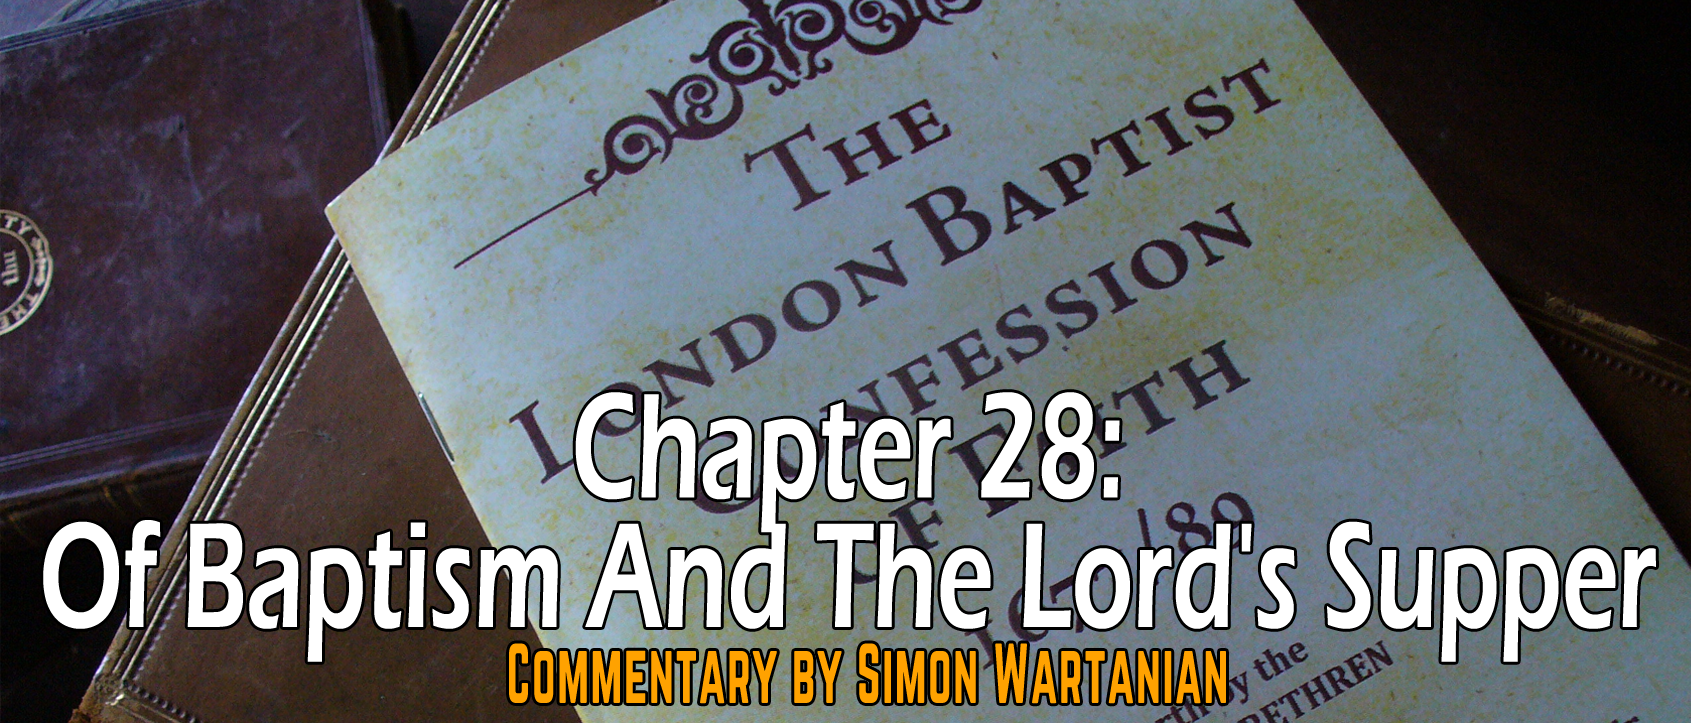 1689 Baptist Confession Chapter 28: Of Baptism and the Lord's Supper - Commentary